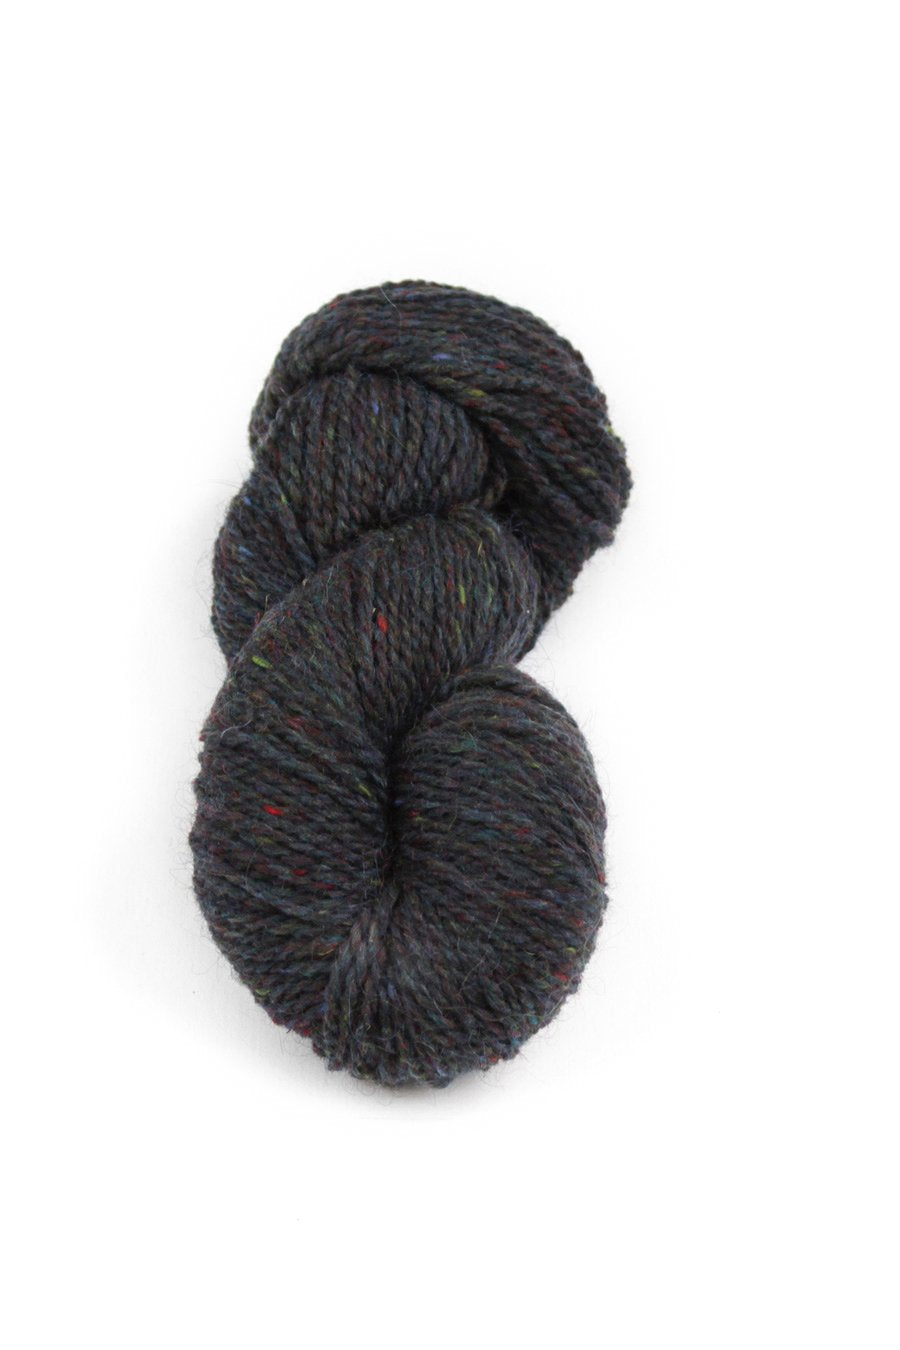 Bonnie Blue Gap: Peace Fleece Worsted